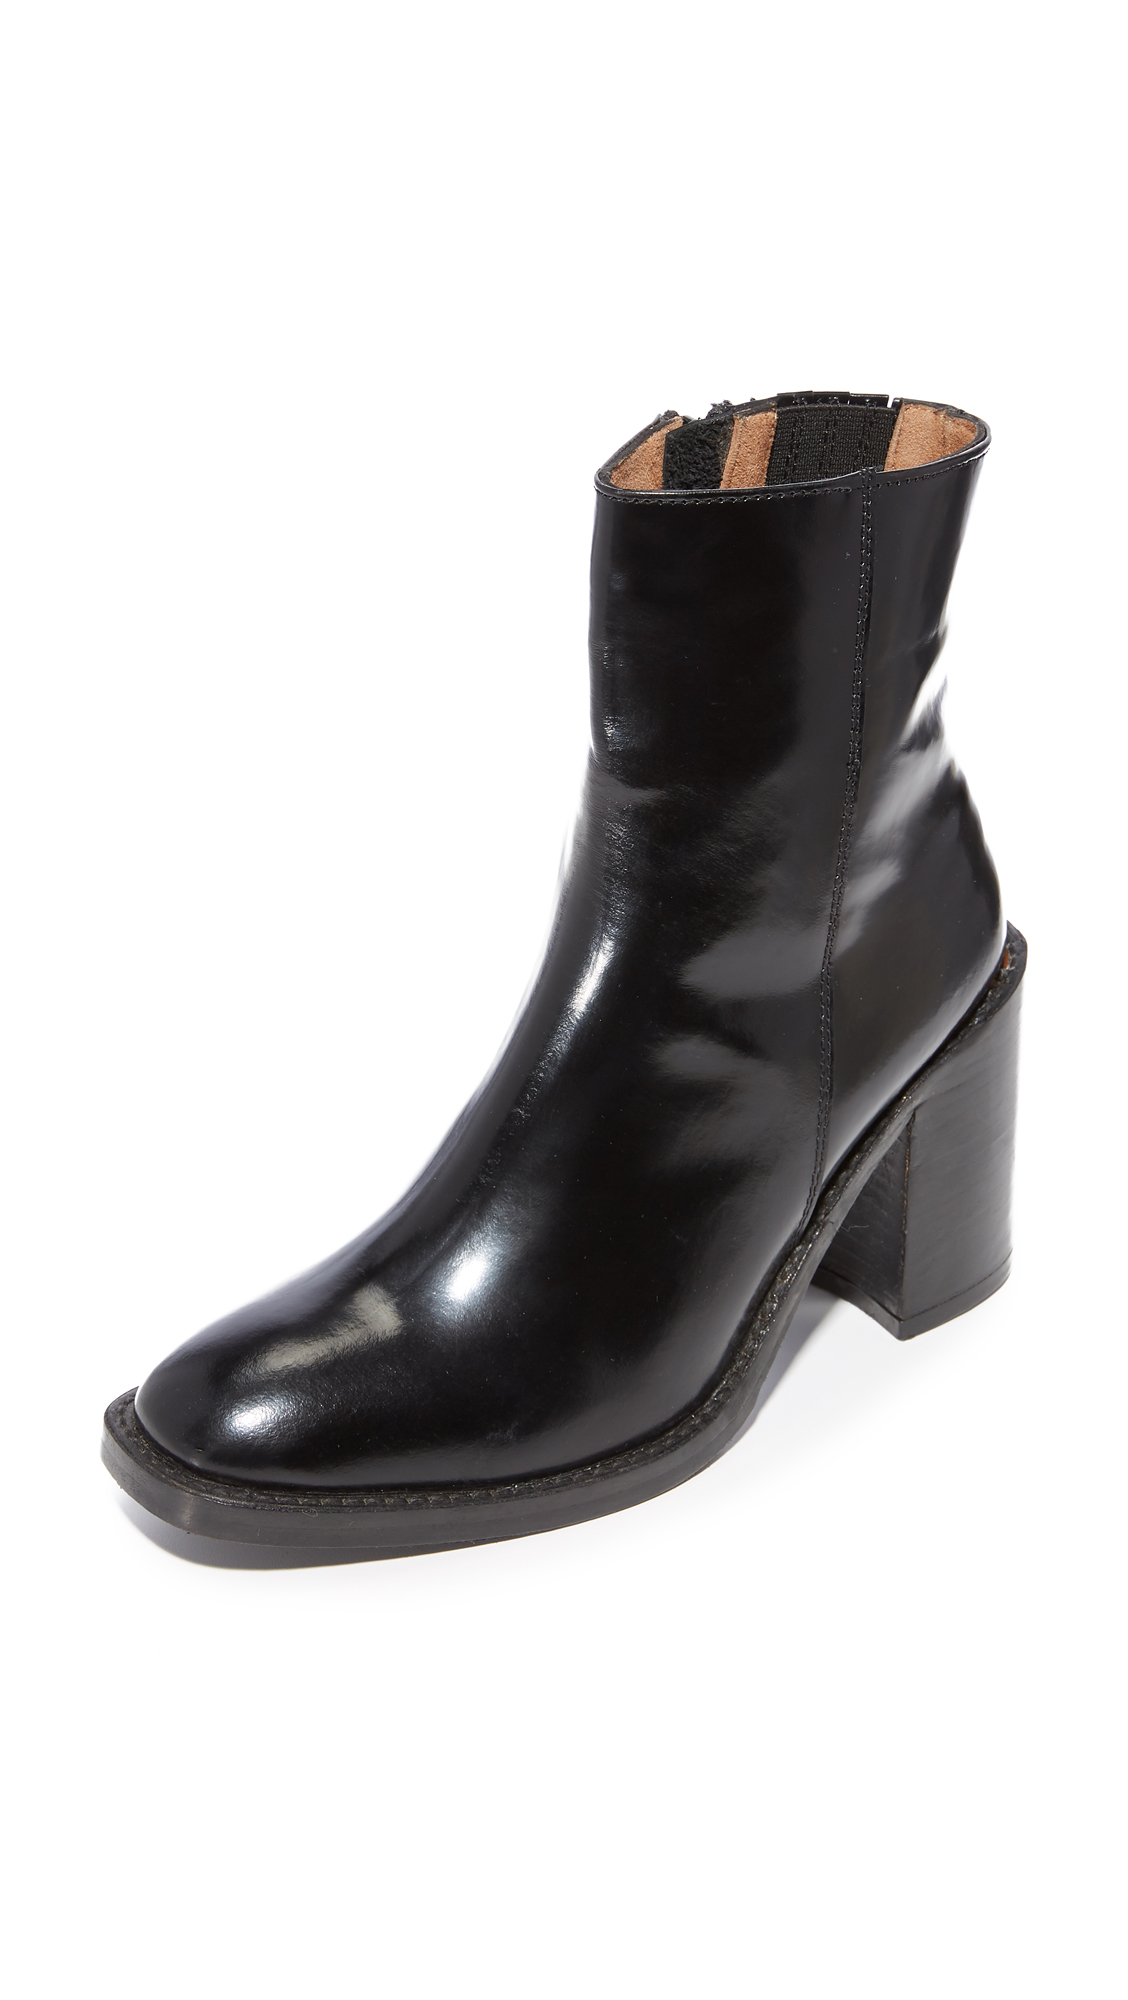 Jeffrey Campbell Shankar Classic Booties - Black Box